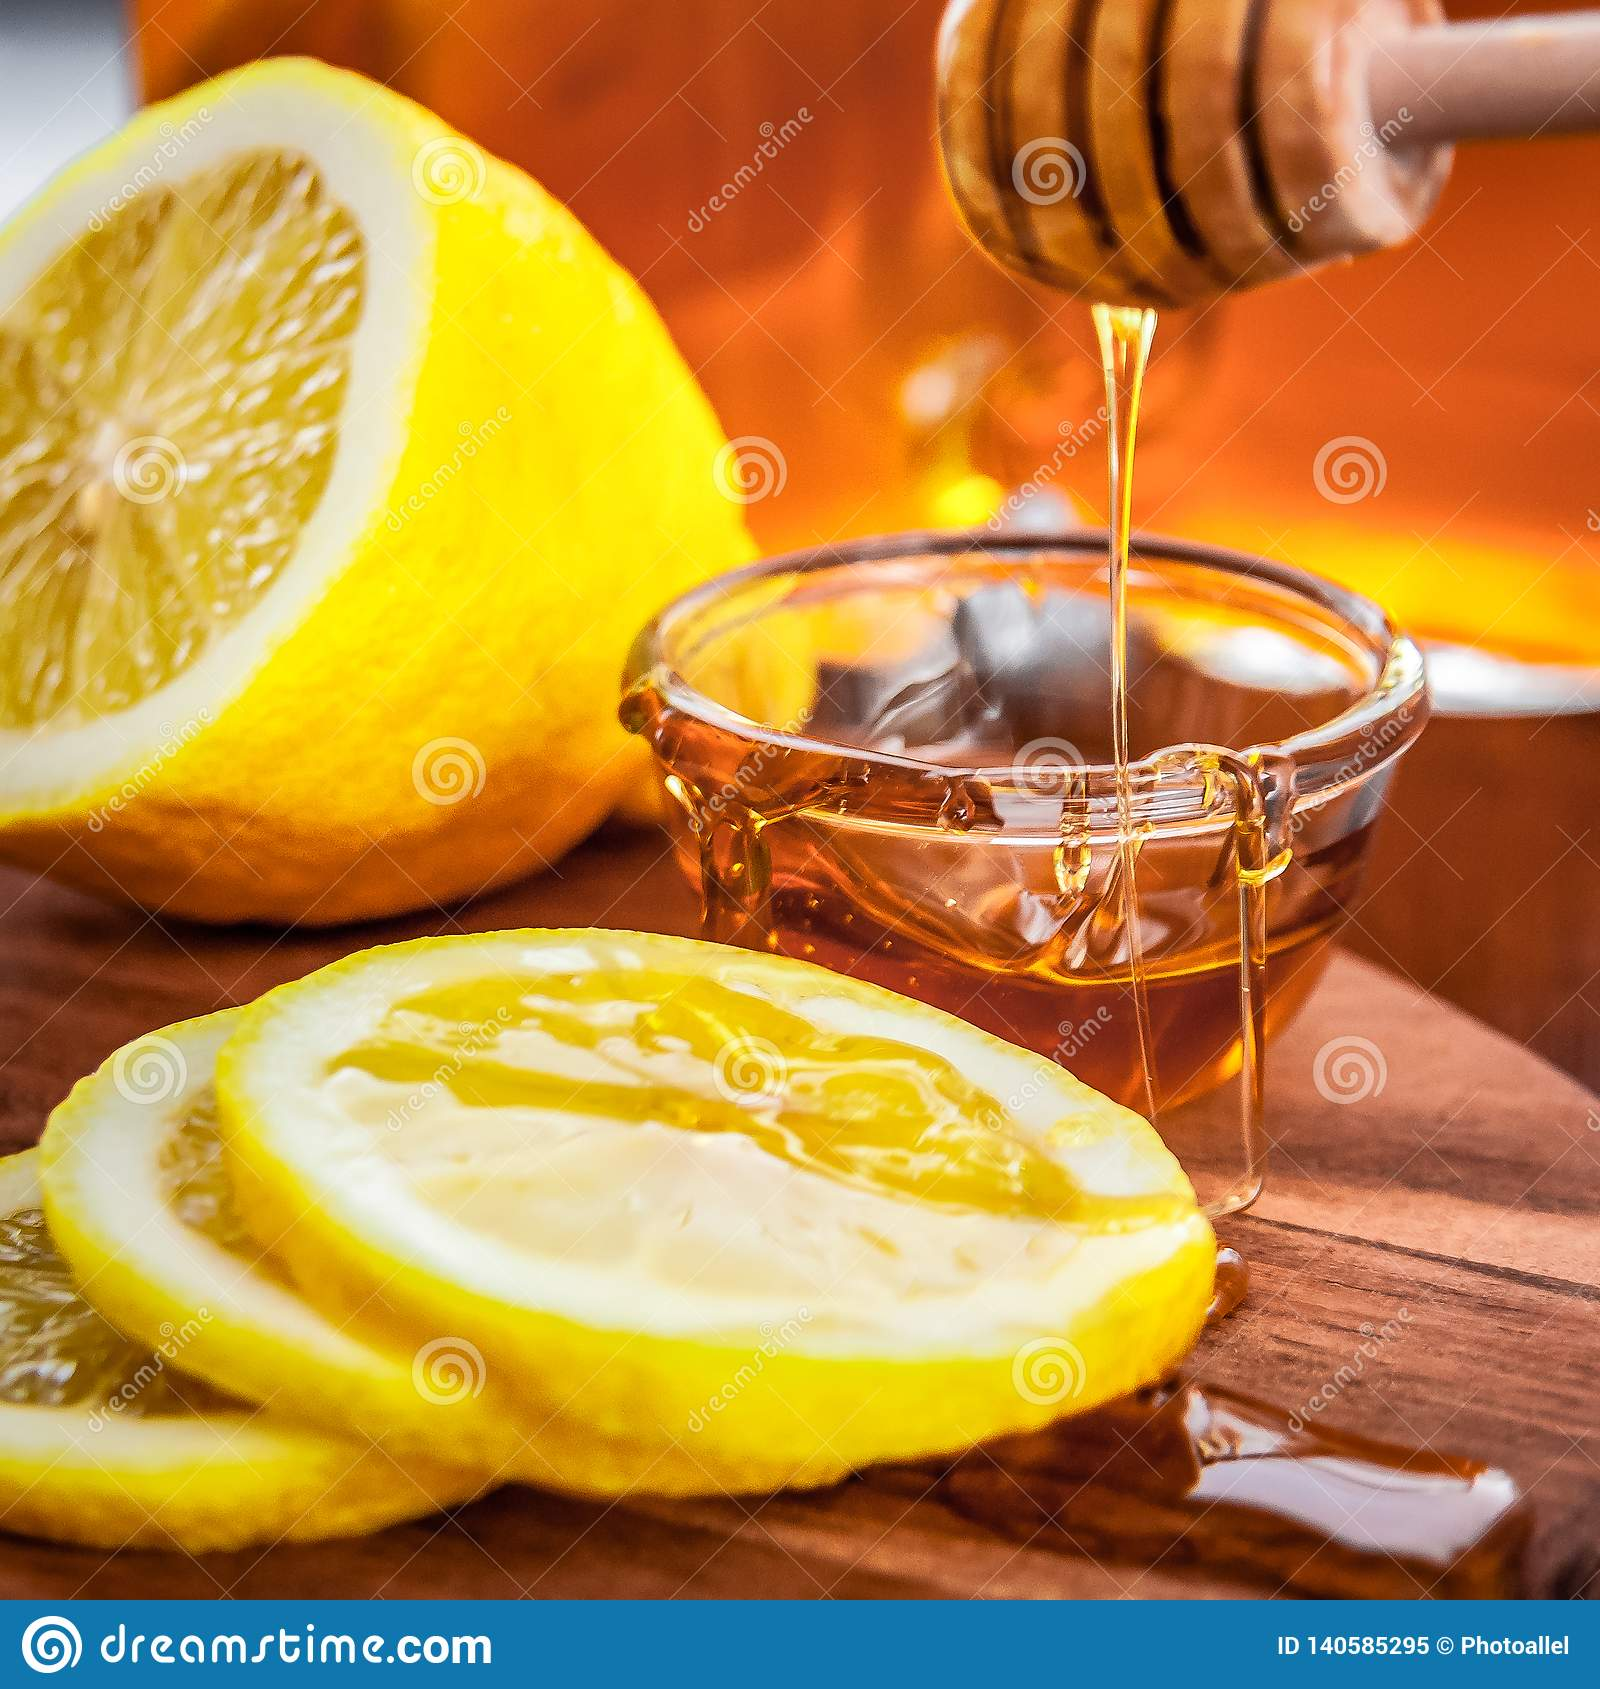 Hot tea with lemon and natural honey, good treat to have vitamins and strong immunity.